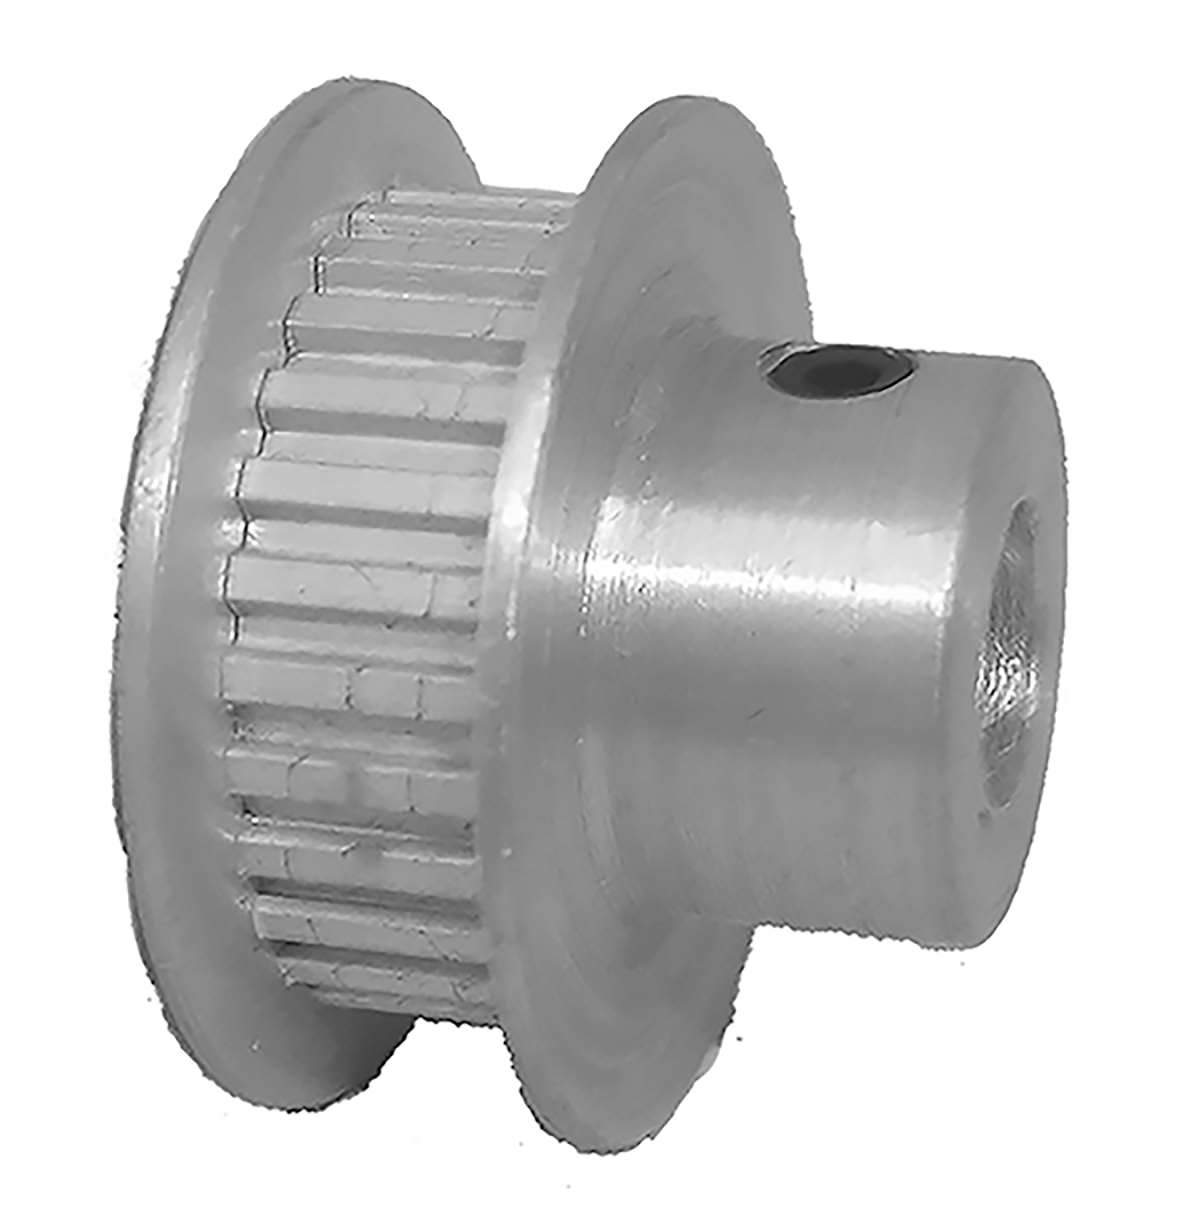 40LT187-6FA3 - Aluminum Imperial Pitch Pulleys